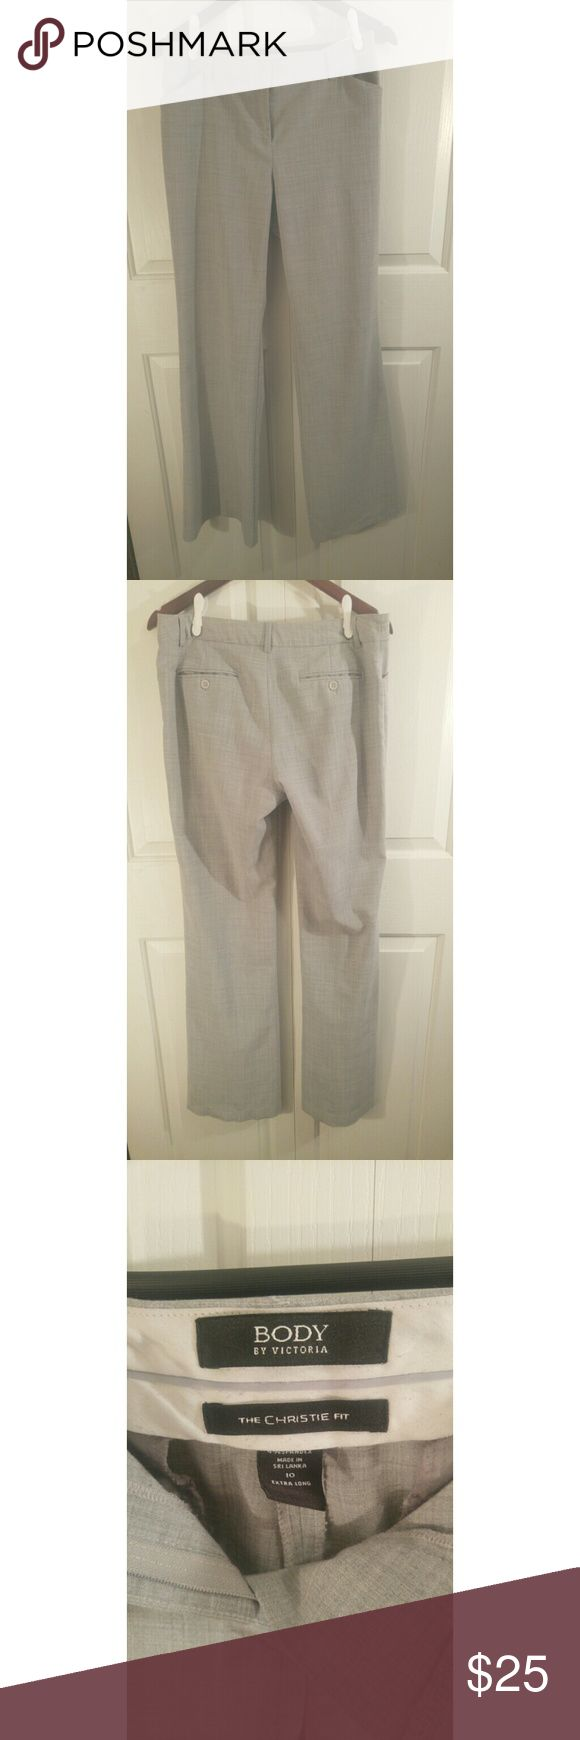 "Victoria's Secret Long Dress Pant Size 10 Body By Victoria Dress Pant The Christy Fit, Boot Cut Size 10,  34"" inseam Light Heather Grey Pants are not Lined In Great Condition Victoria's Secret Pants Trousers"